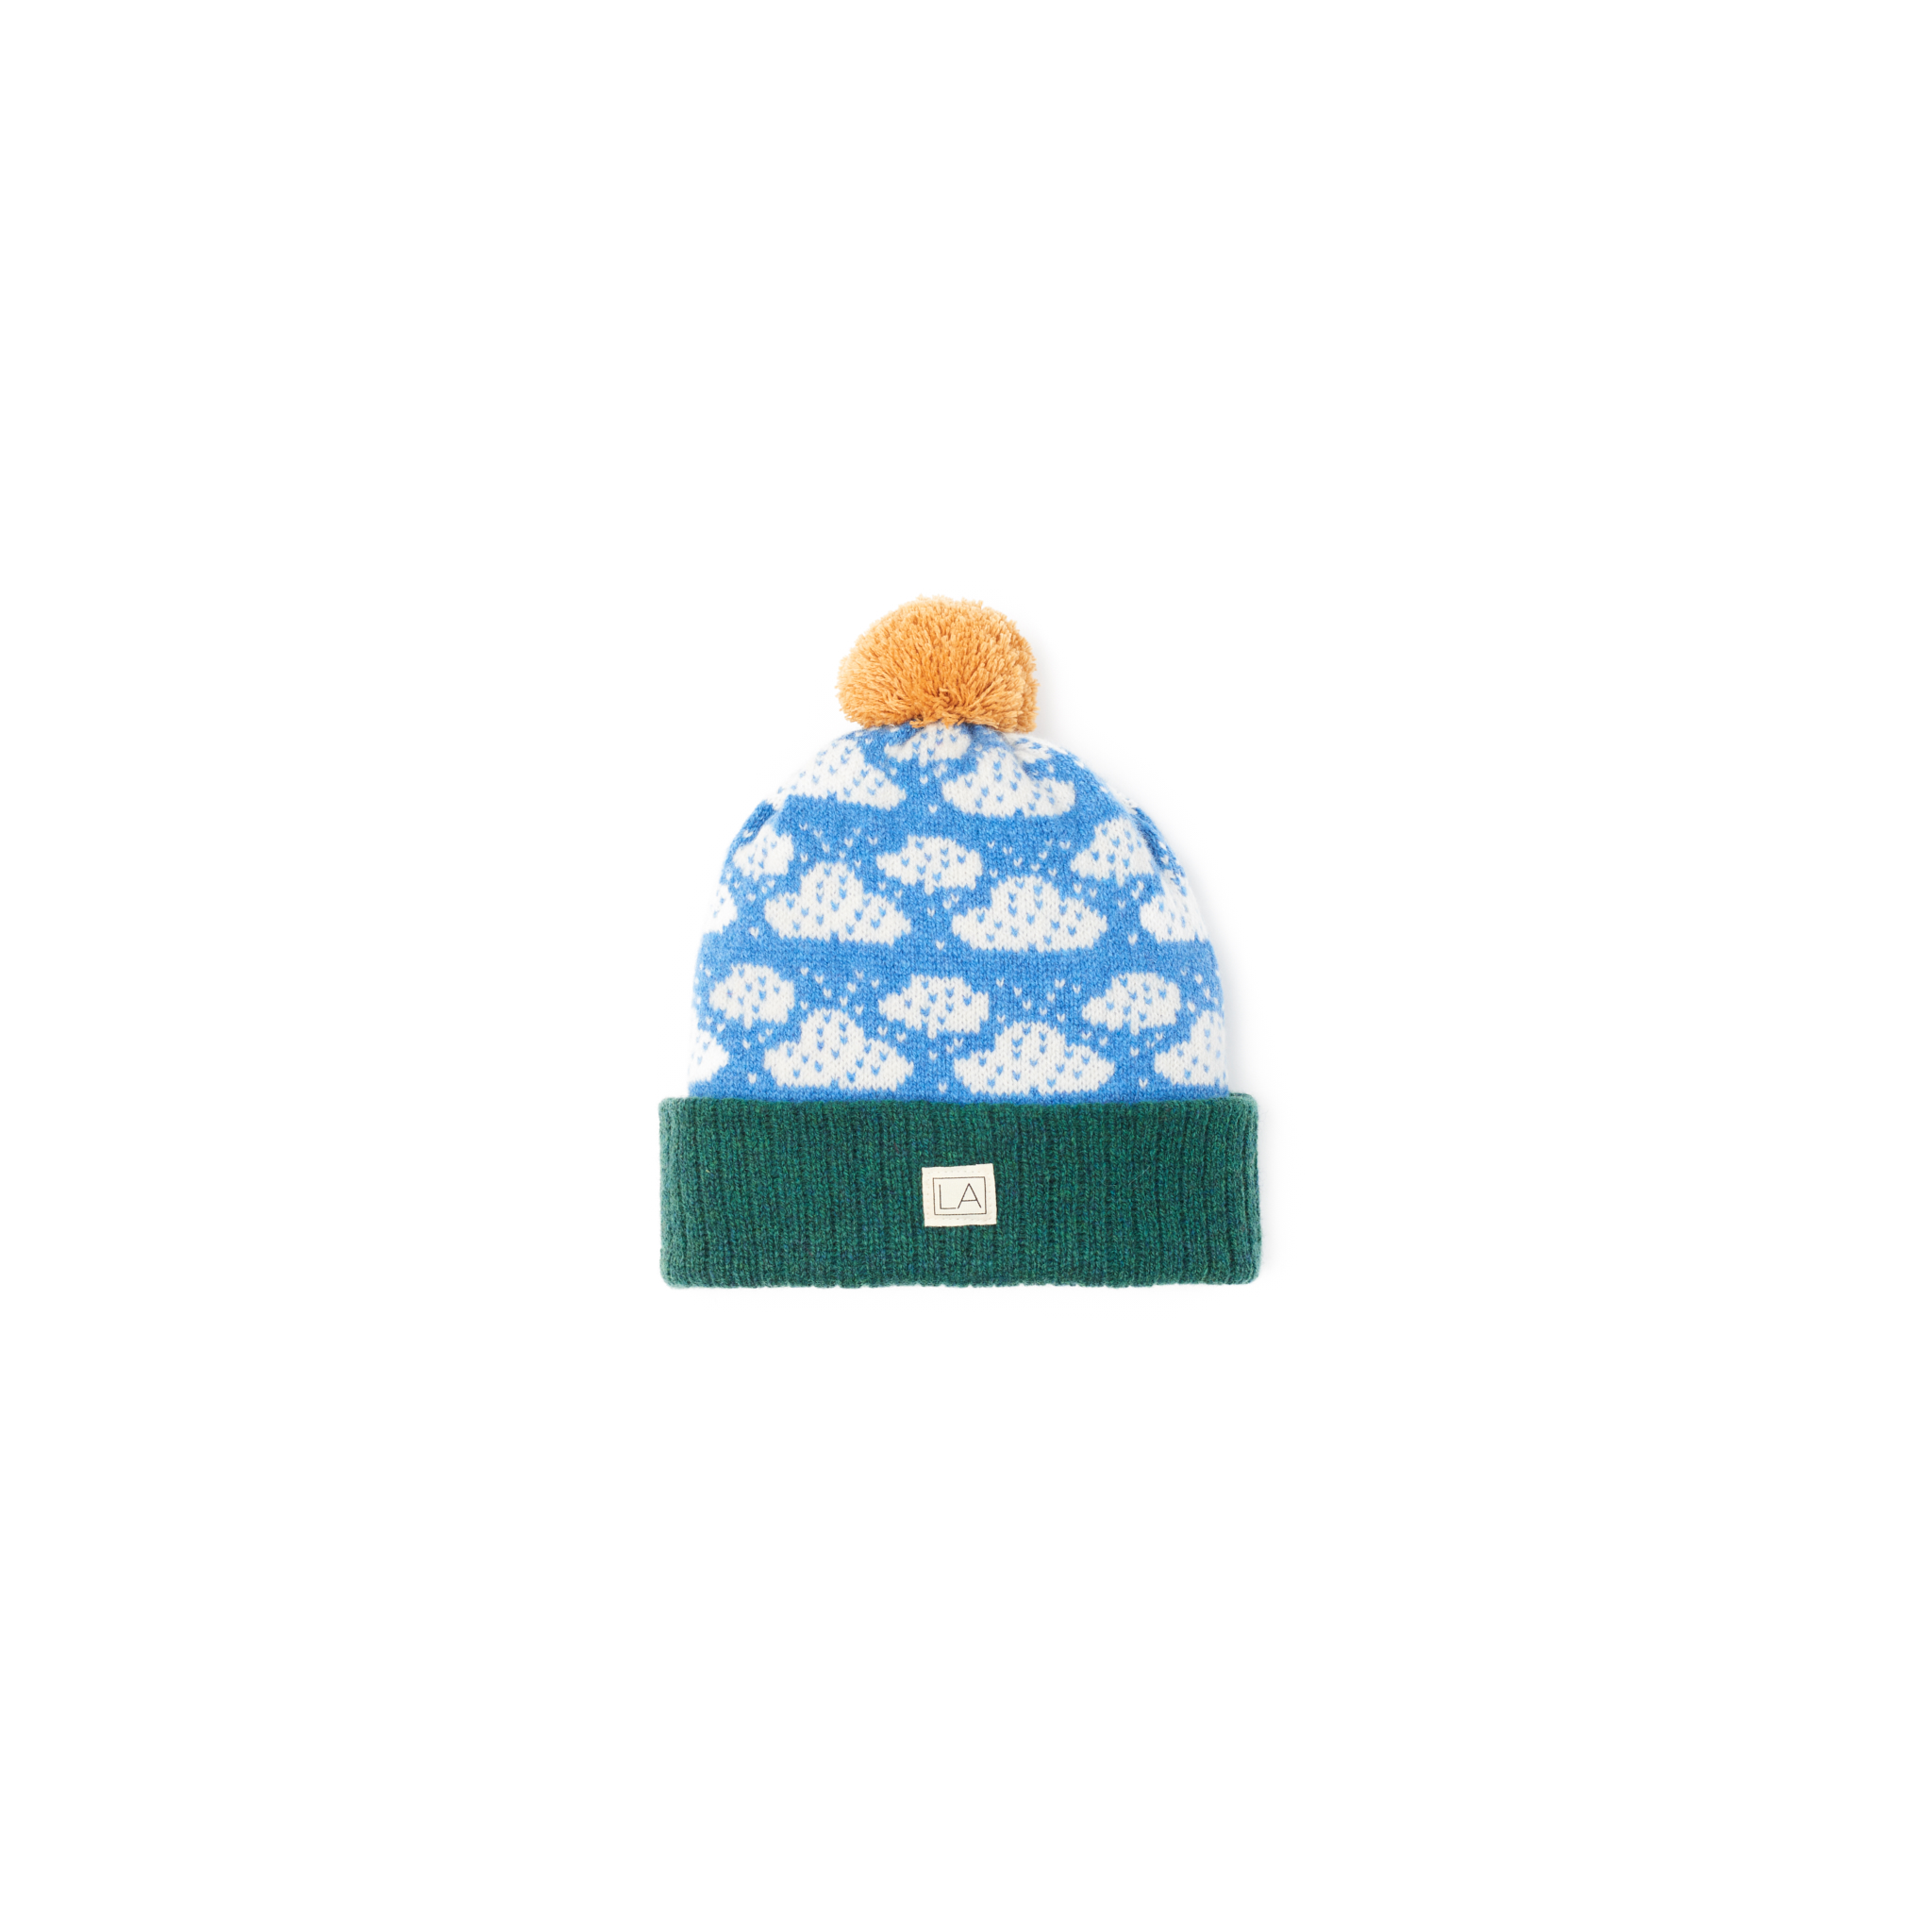 5fa7bc0a3fd Lambswool Classic Cloud Hat green grass blue white sunshine sustainably  ireland handmade ...